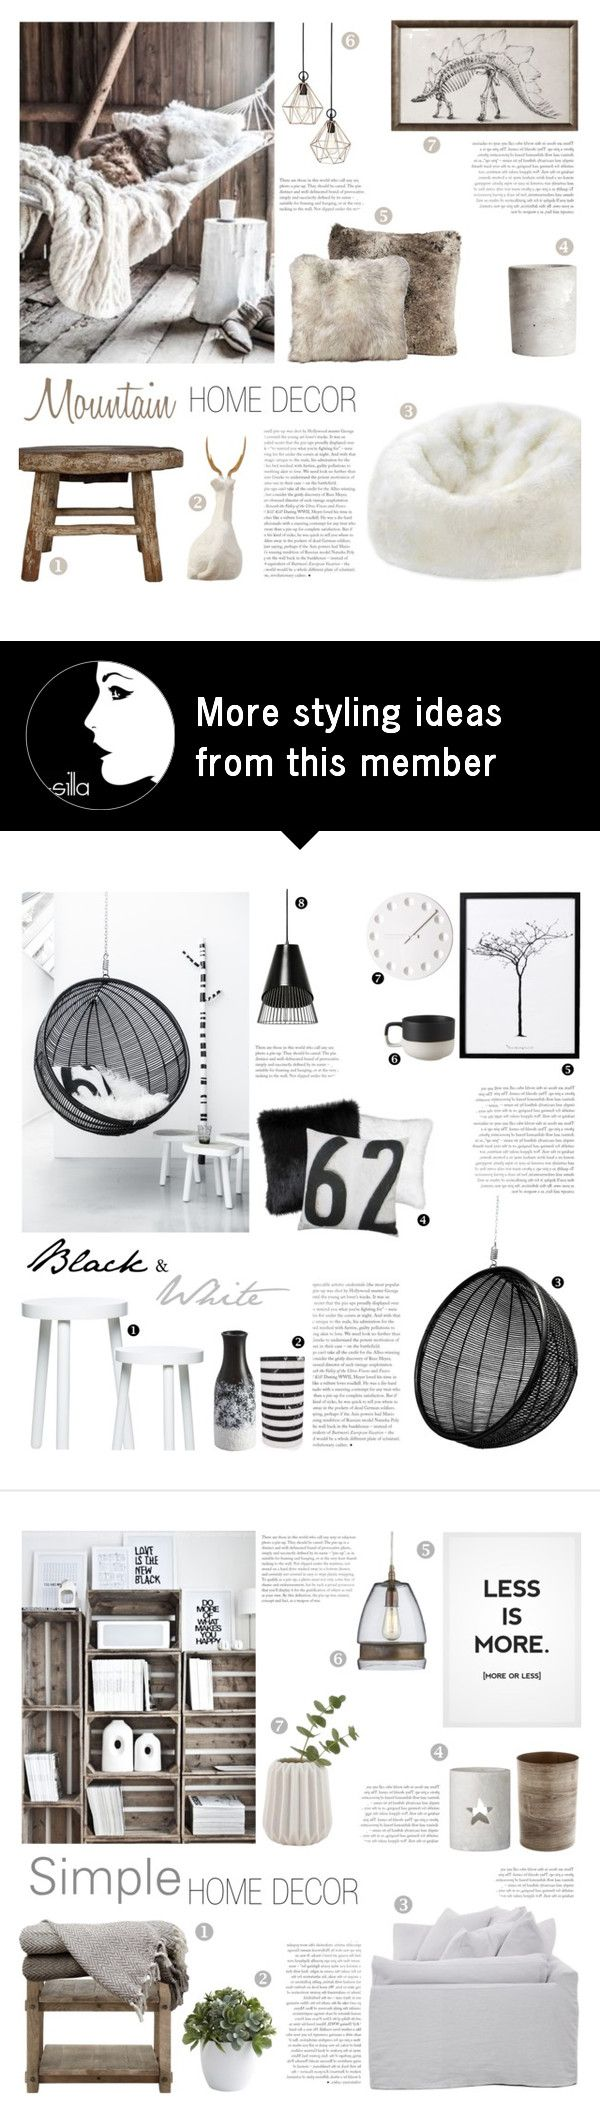 """Mountain Home Decor"" by c-silla on Polyvore featuring interior, interiors, interior design, home, home decor, interior decorating, Alyx, Dot & Bo, Christopher Guy and H&M"